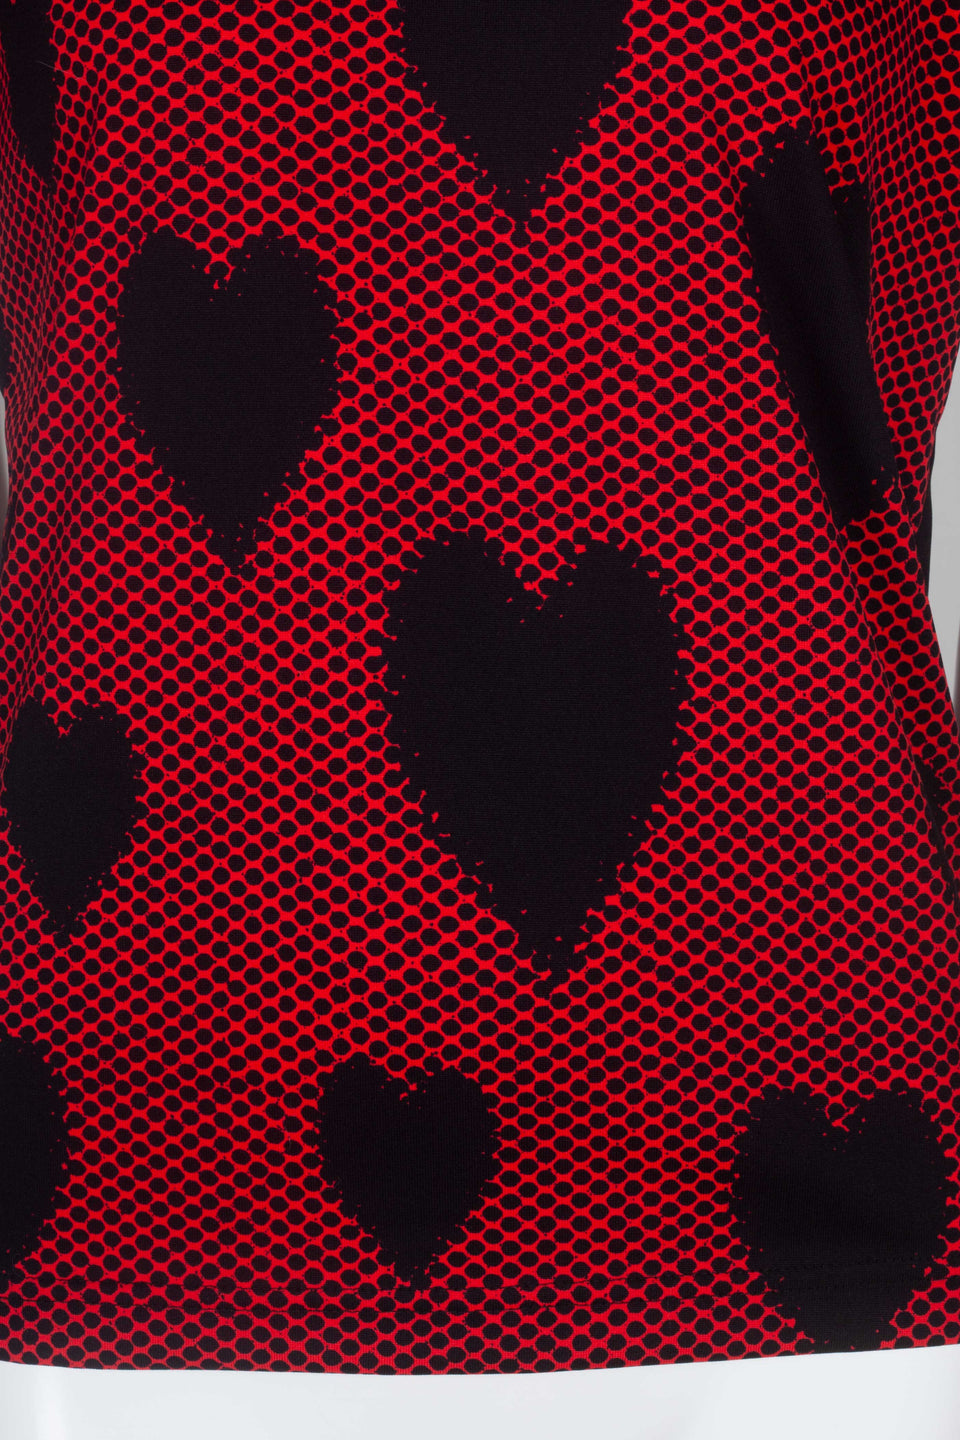 From Comme des Garçons 2008 vintage archive. A rock mood on this red, short sleeve tee with black dots and hearts.